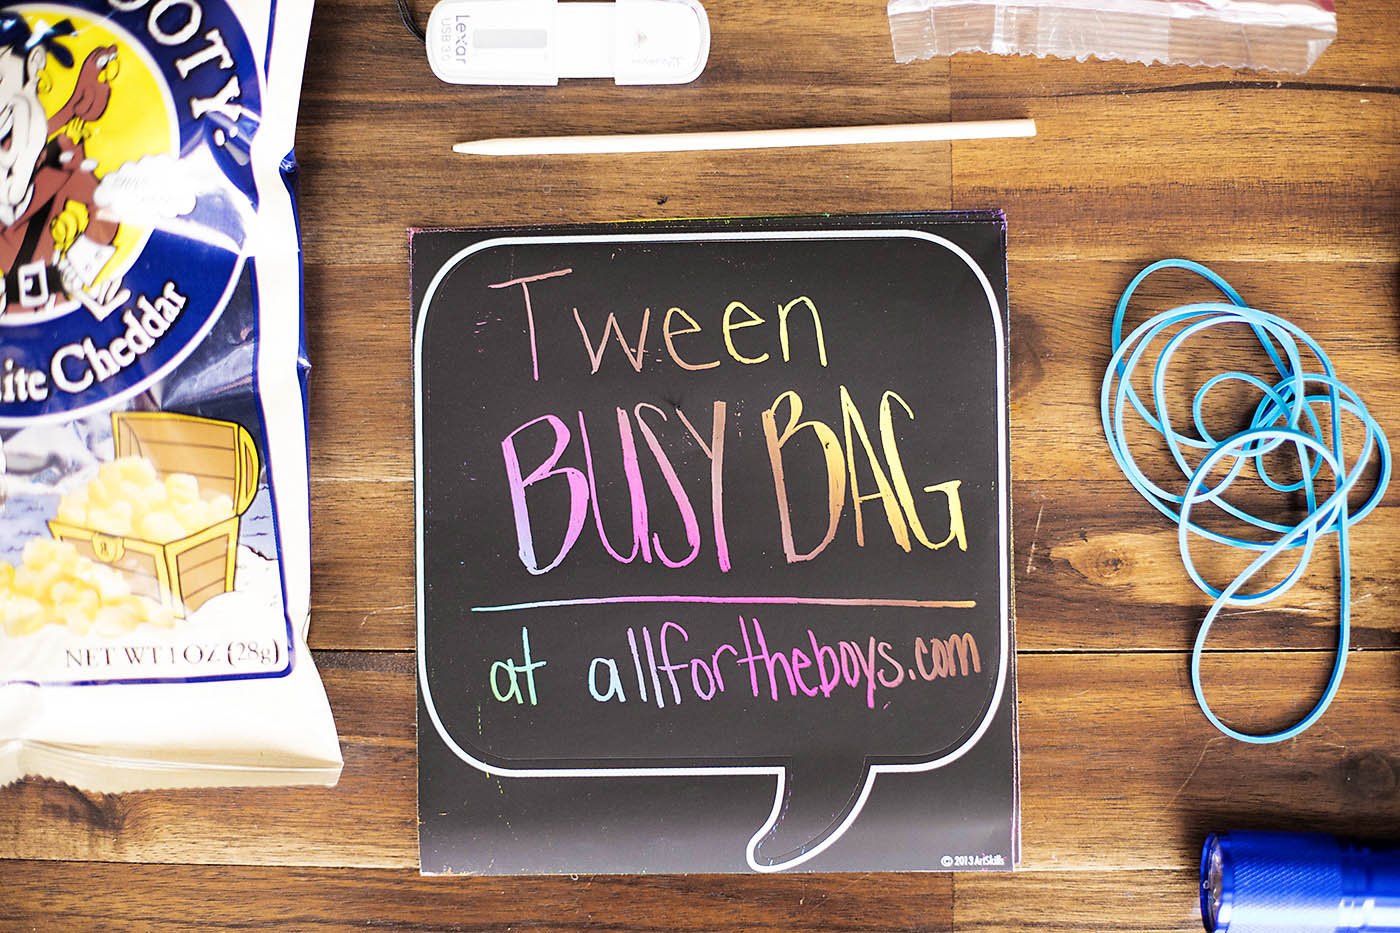 Tween busy bag - interesting ideas and things to pack to keep tweens busy!